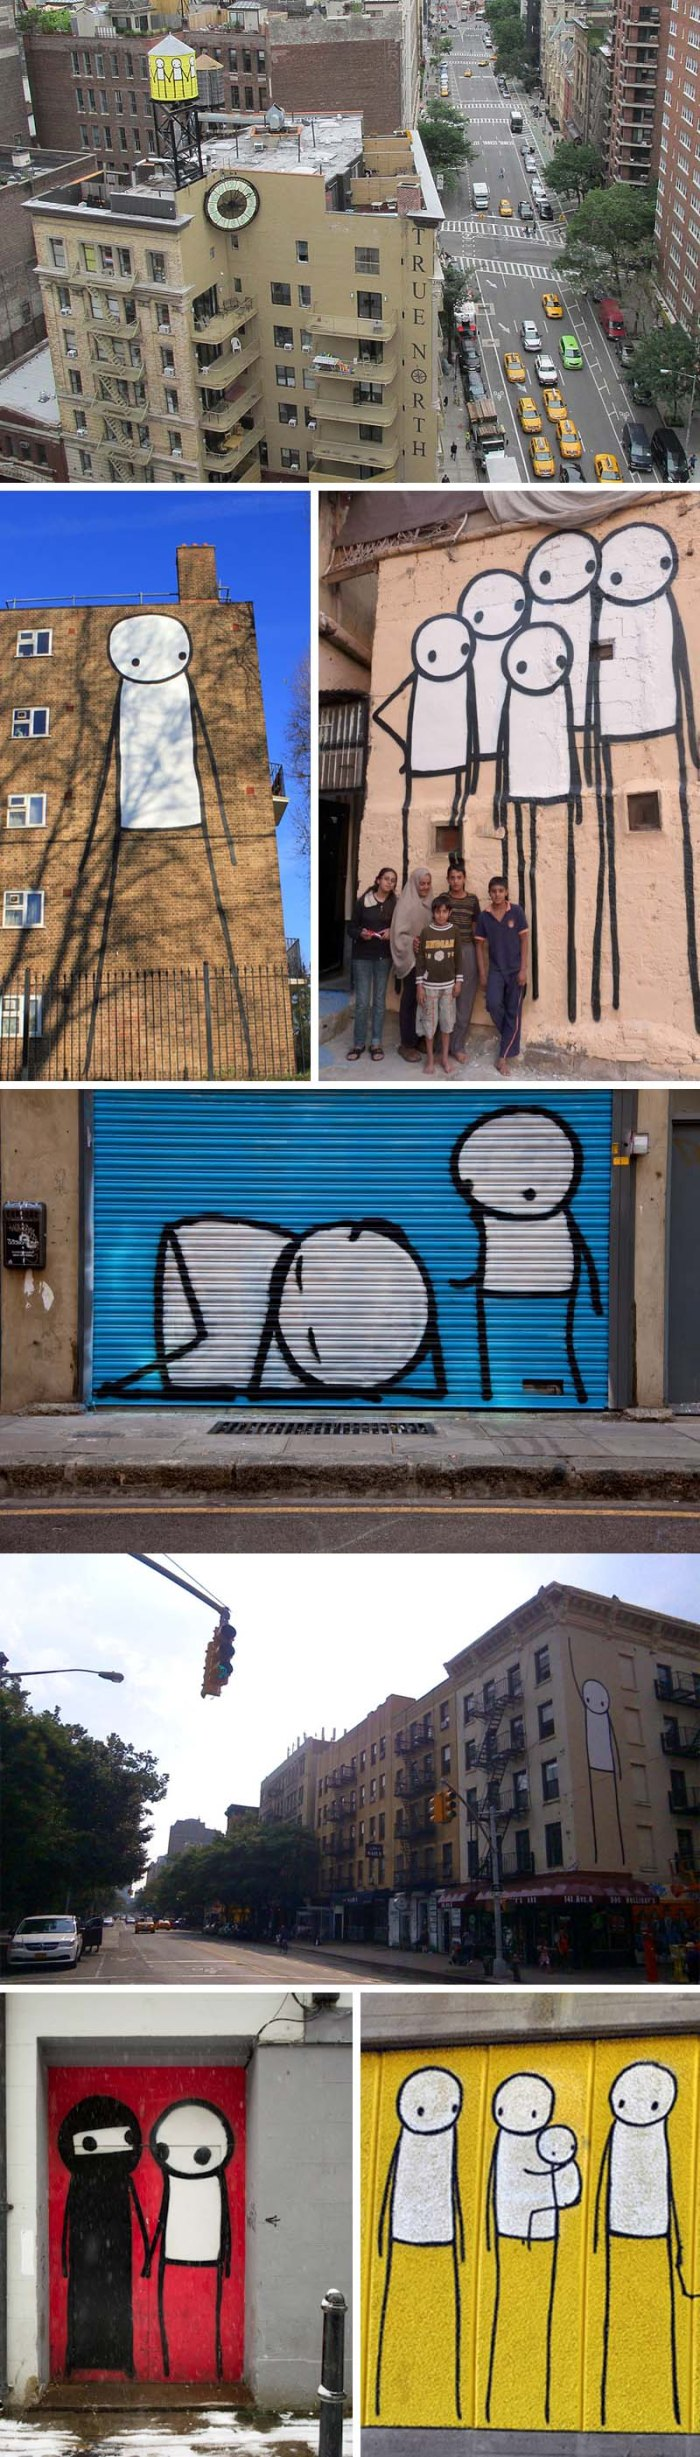 Stik, British street artist paint stick figure graffiti, cute, fun, water towers